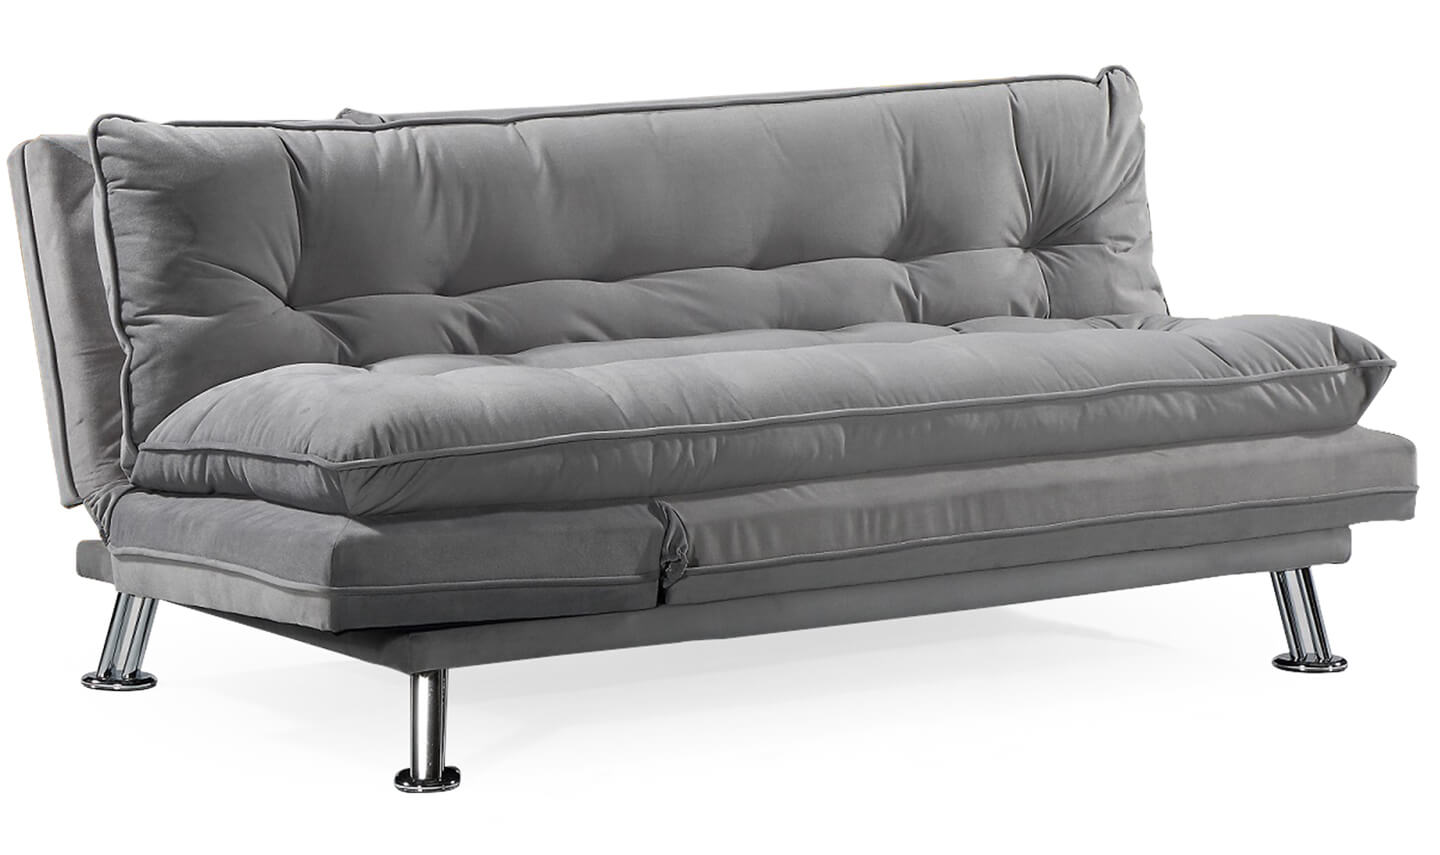 Sonder Sofa Bed Grey